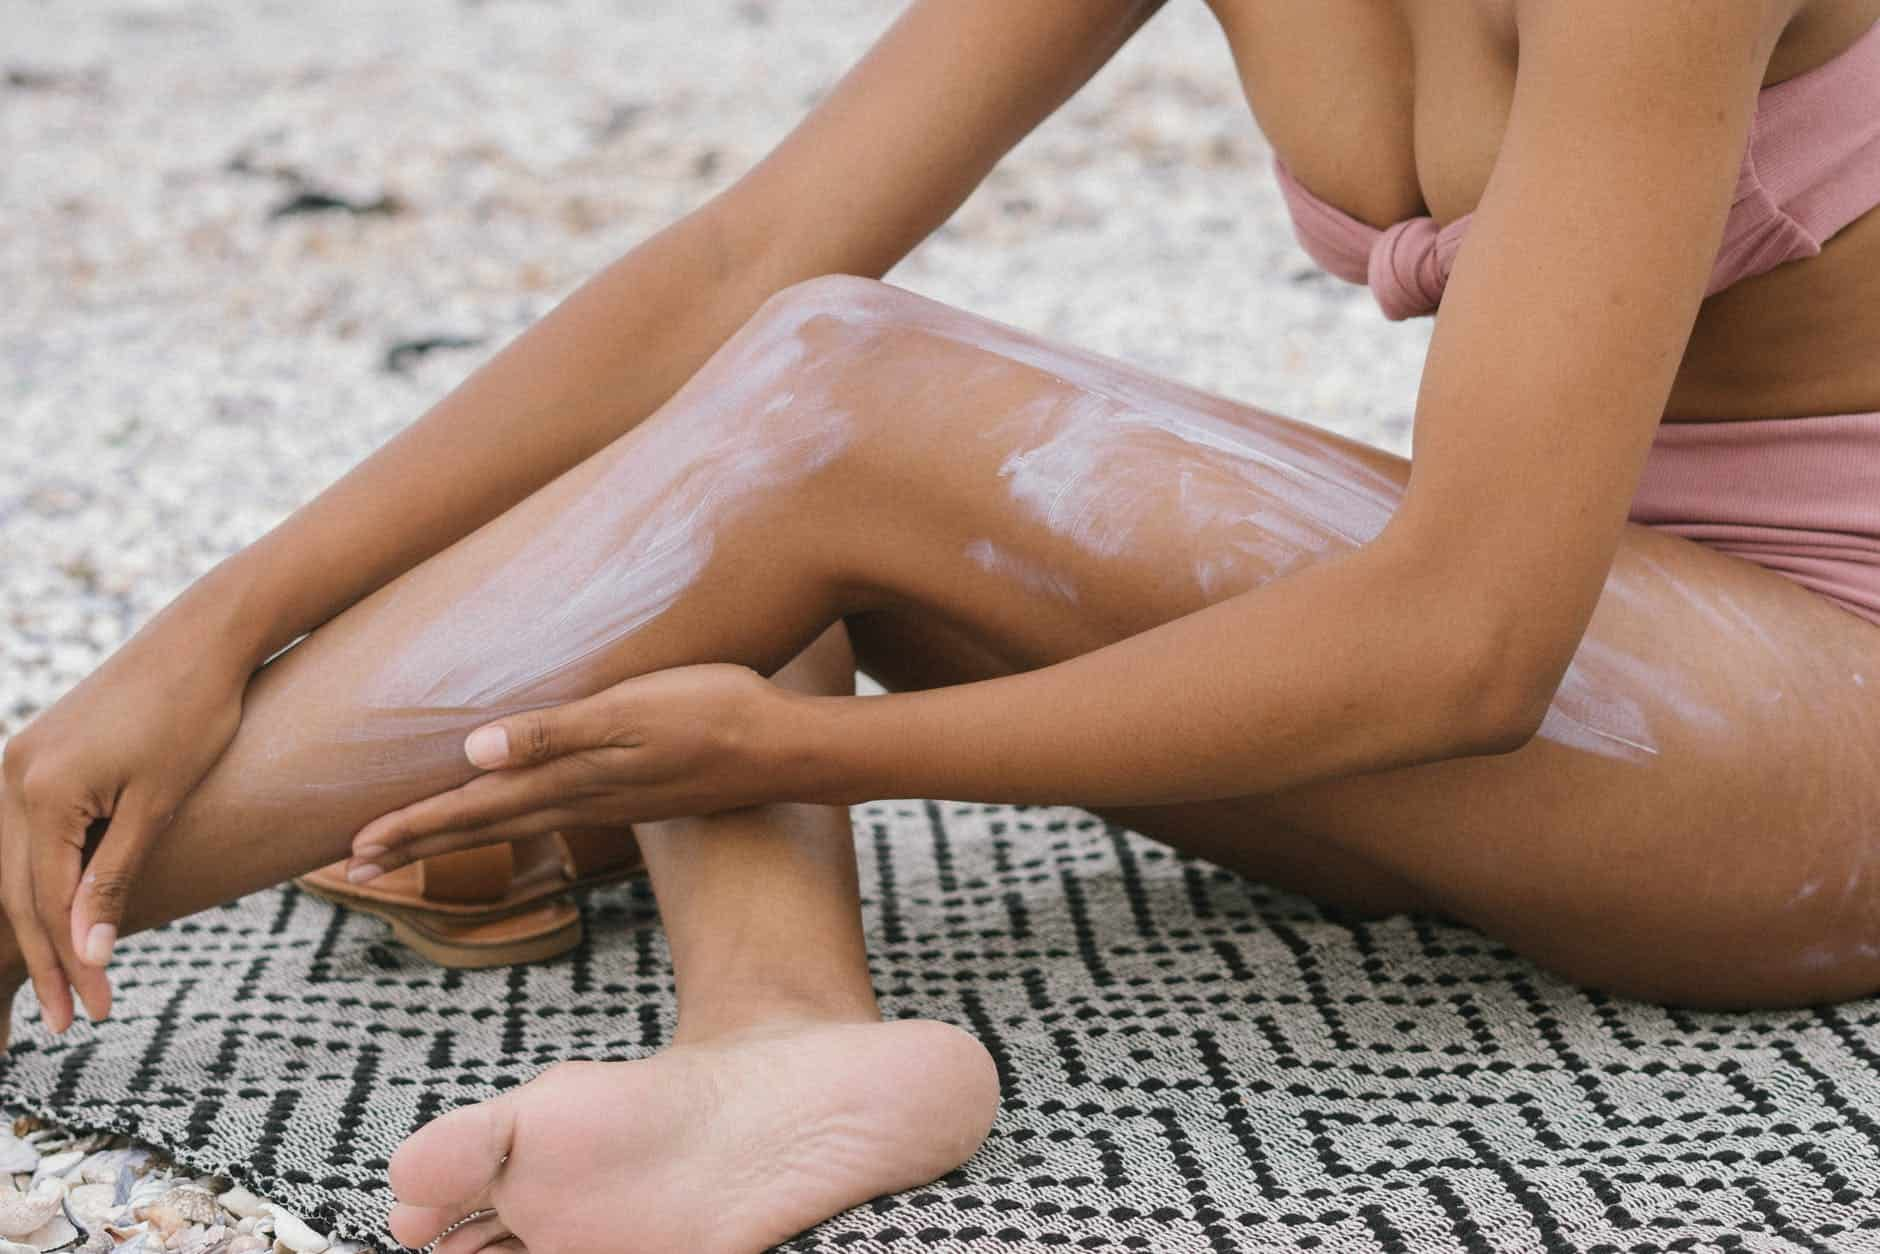 Tips for when you travel to a hotter climate | The Common Traveler | woman seated on textile applying sunscreen | Hot Climate by popular US international travel blog, The common Traveler: image of a woman wearing a pink two piece swimsuit and applying sunscreen to her leg.